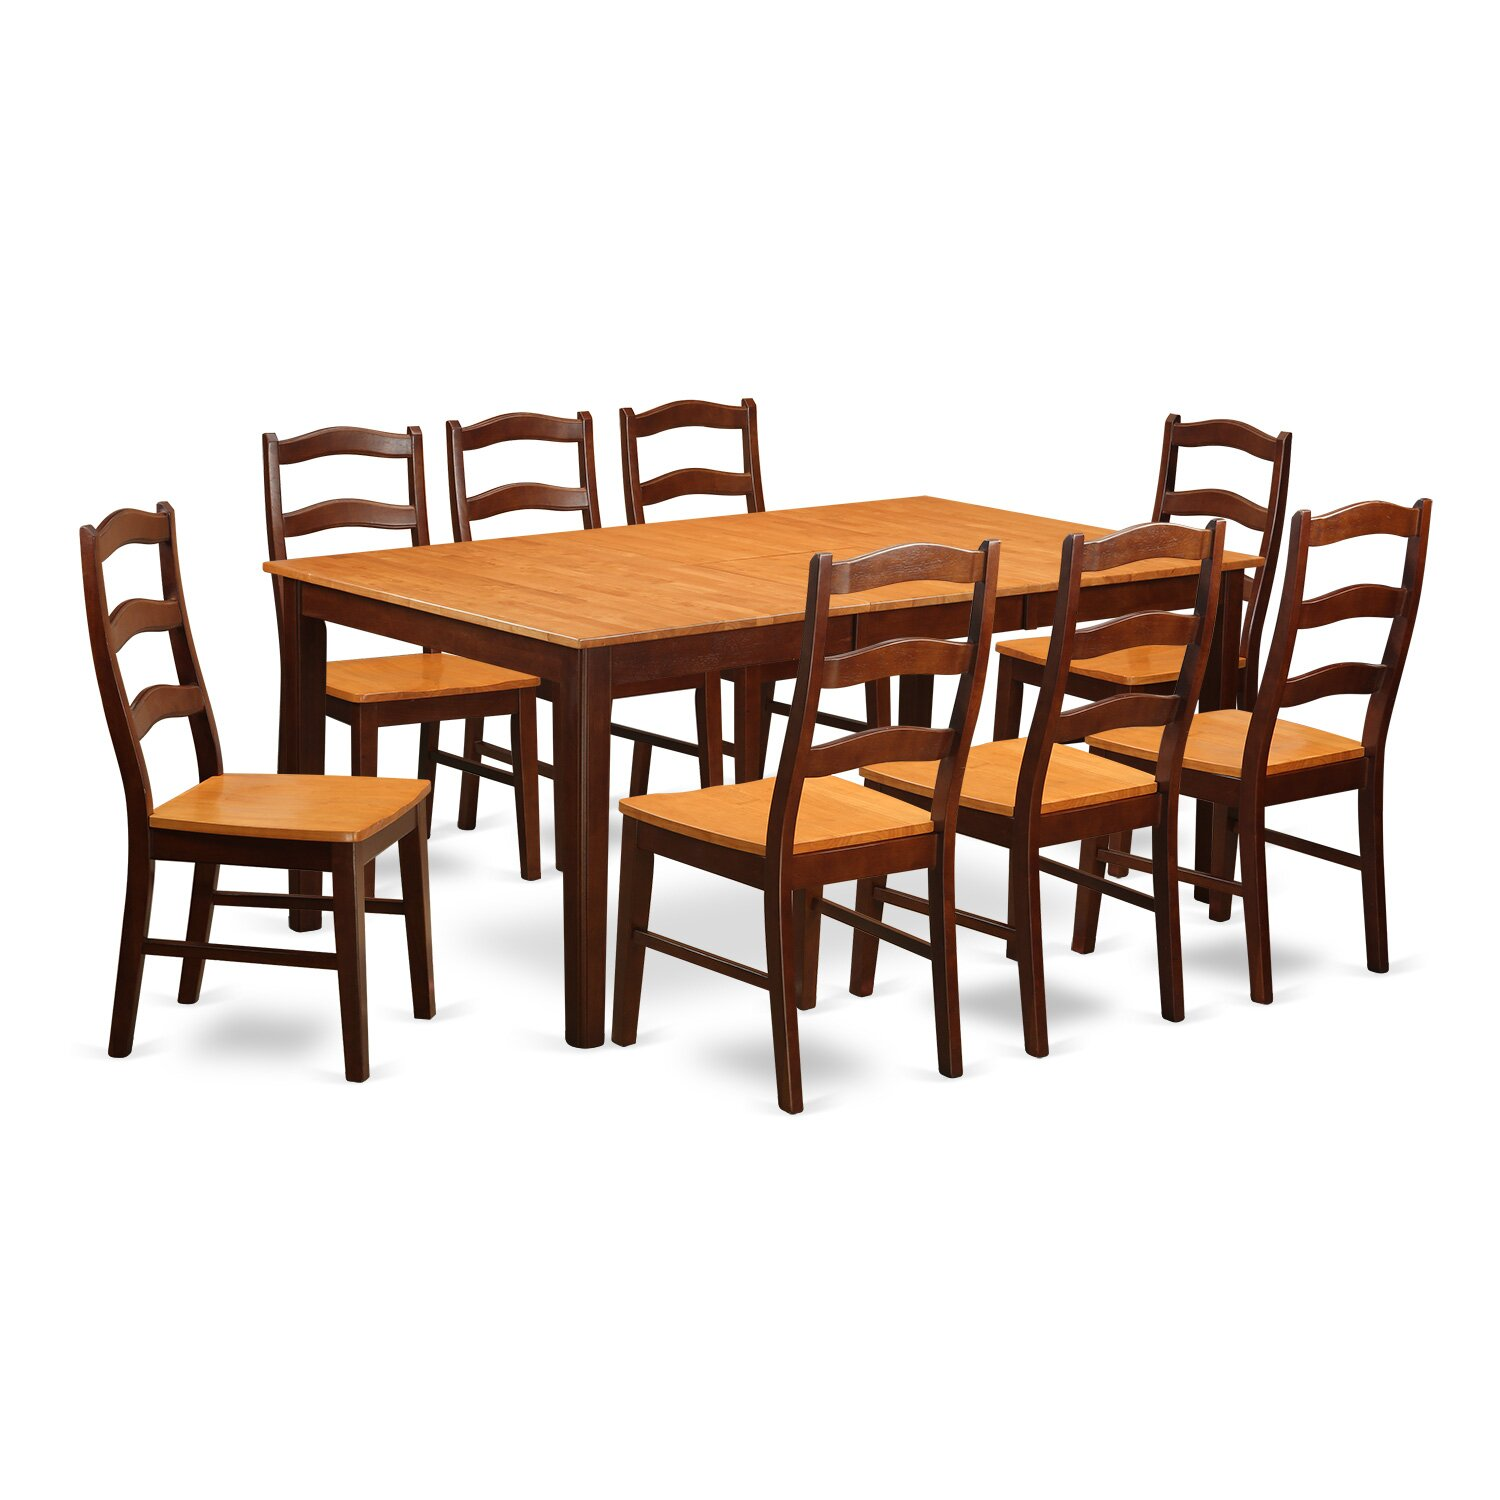 East west henley 9 piece dining set reviews for Dining room furniture 9 piece